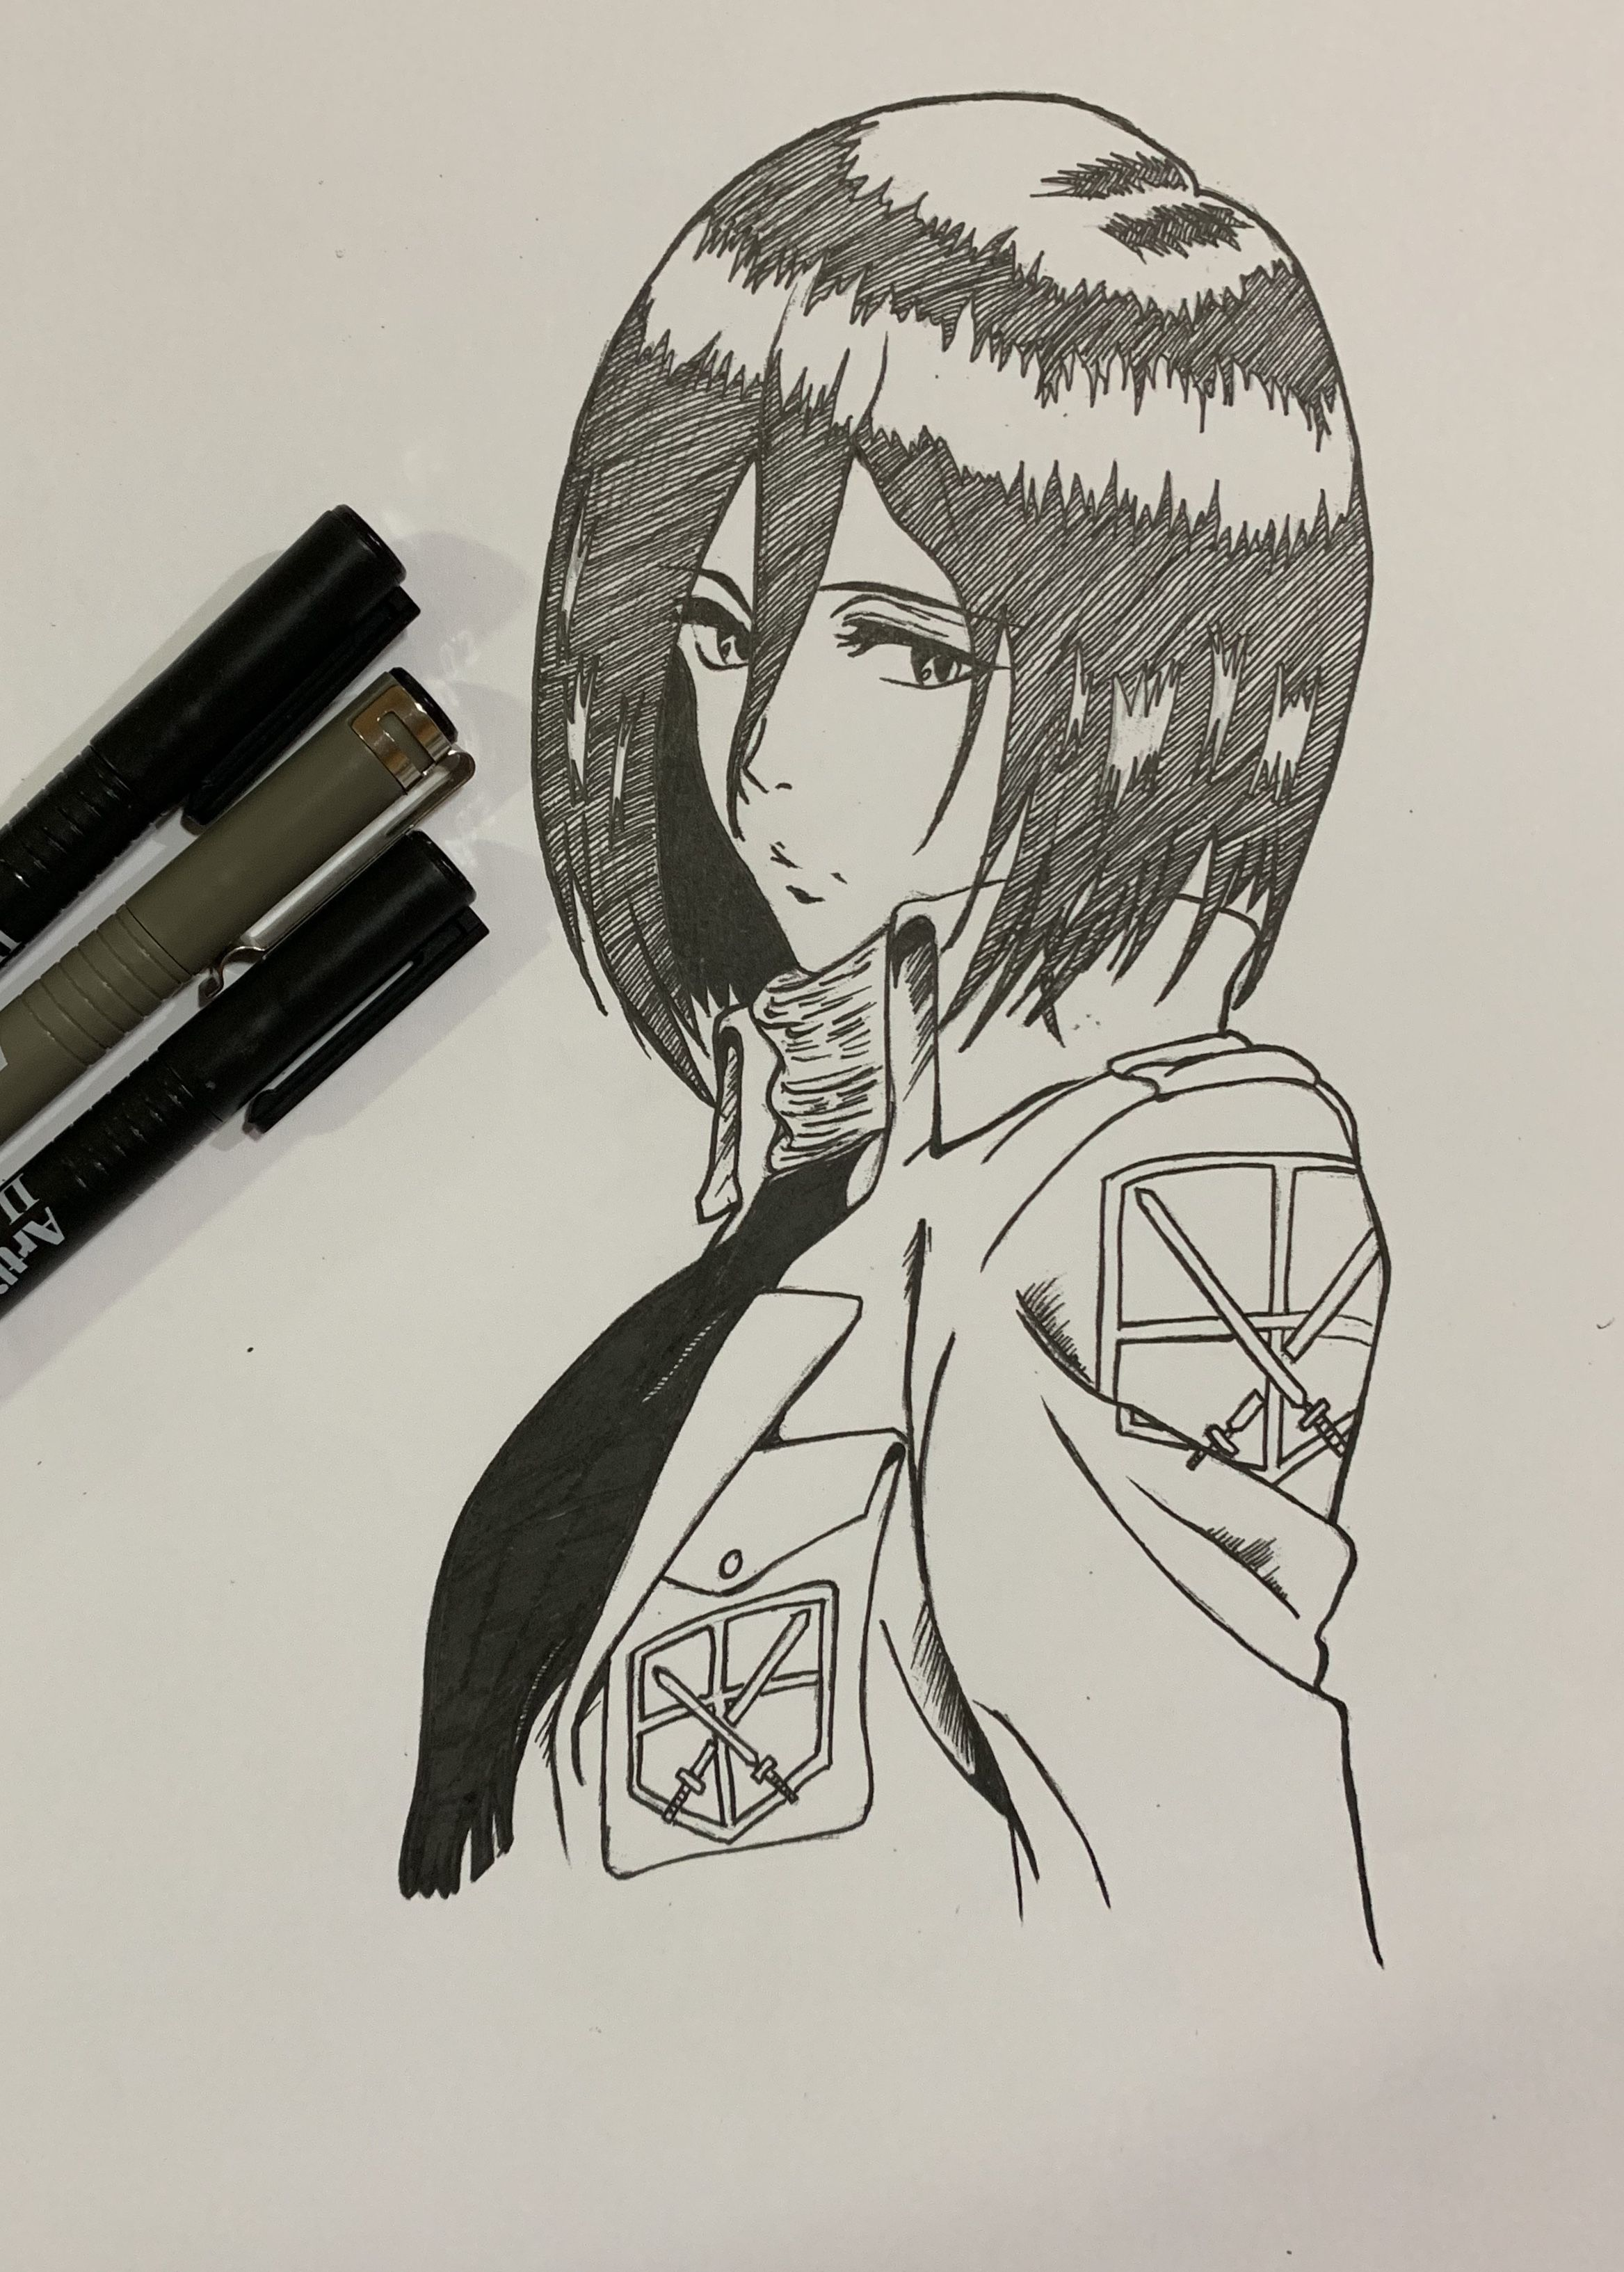 Mikasa from Attack on Titan Anime drawing Ink